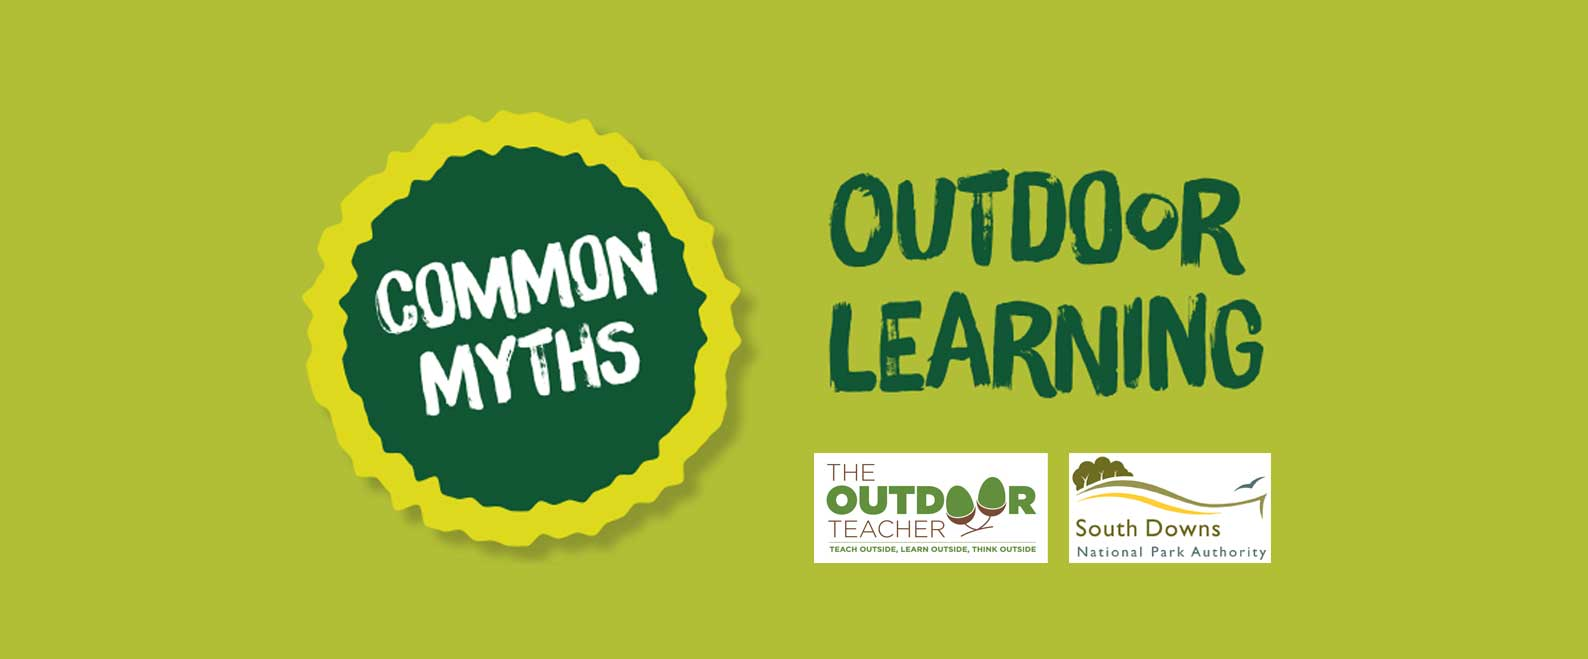 outdoor learning common myths